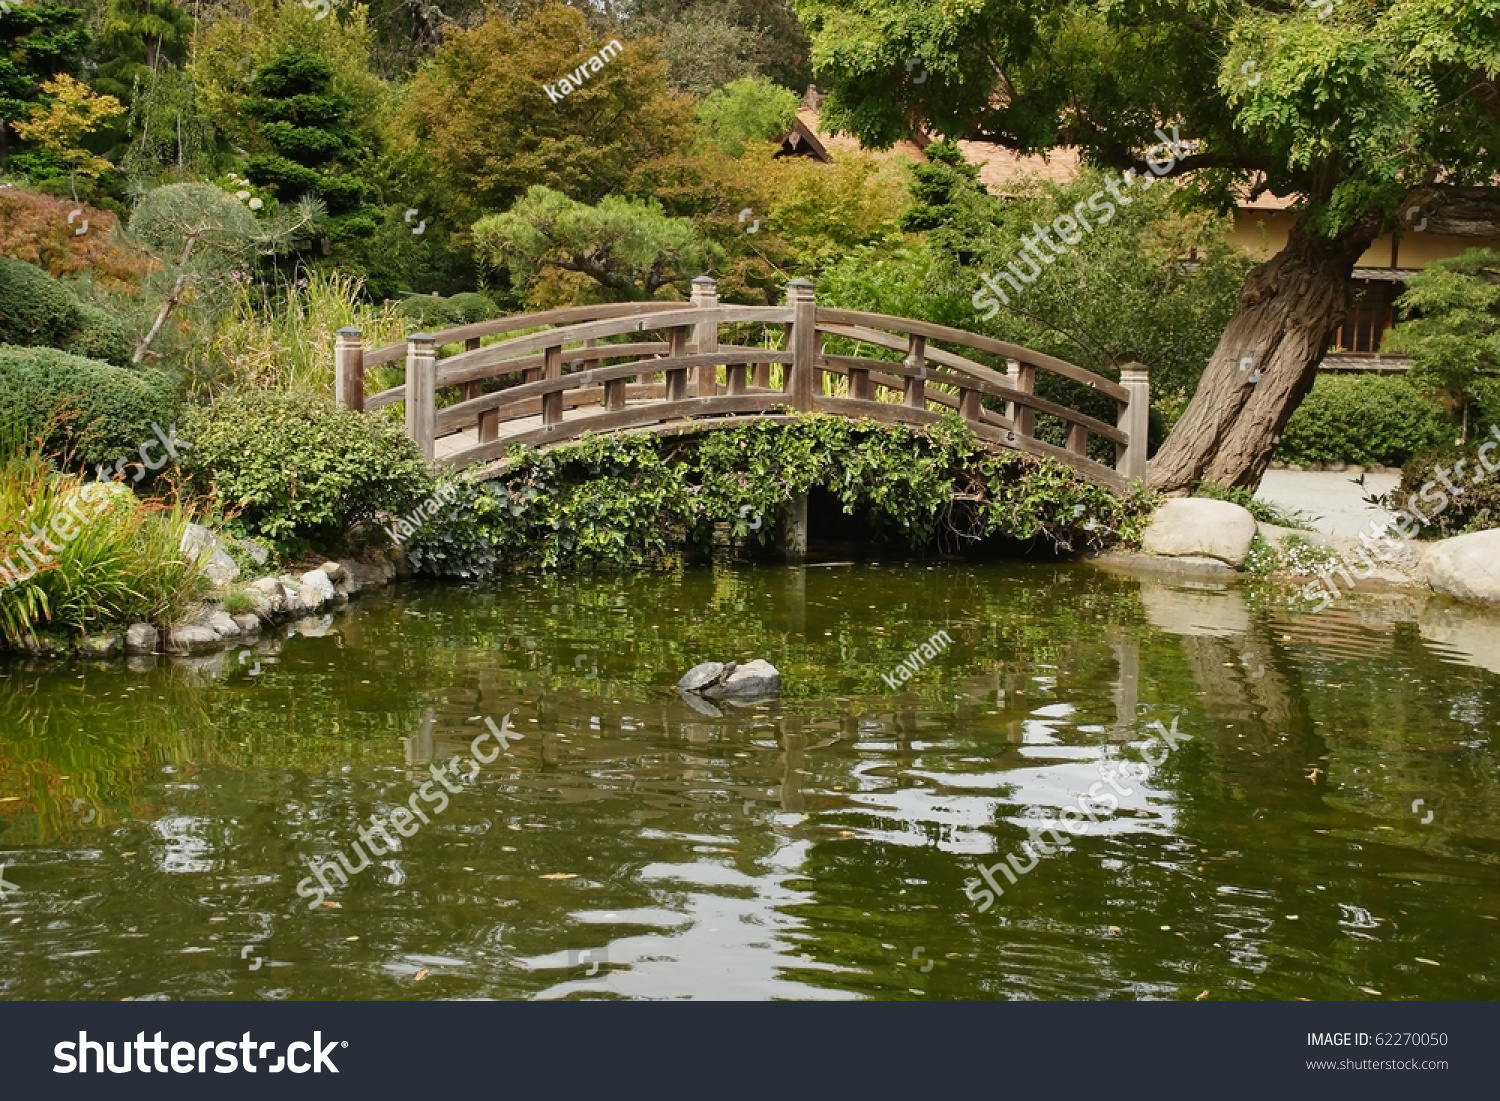 Small Pond Decorative Wooden Bridge Japanese Stock Photo